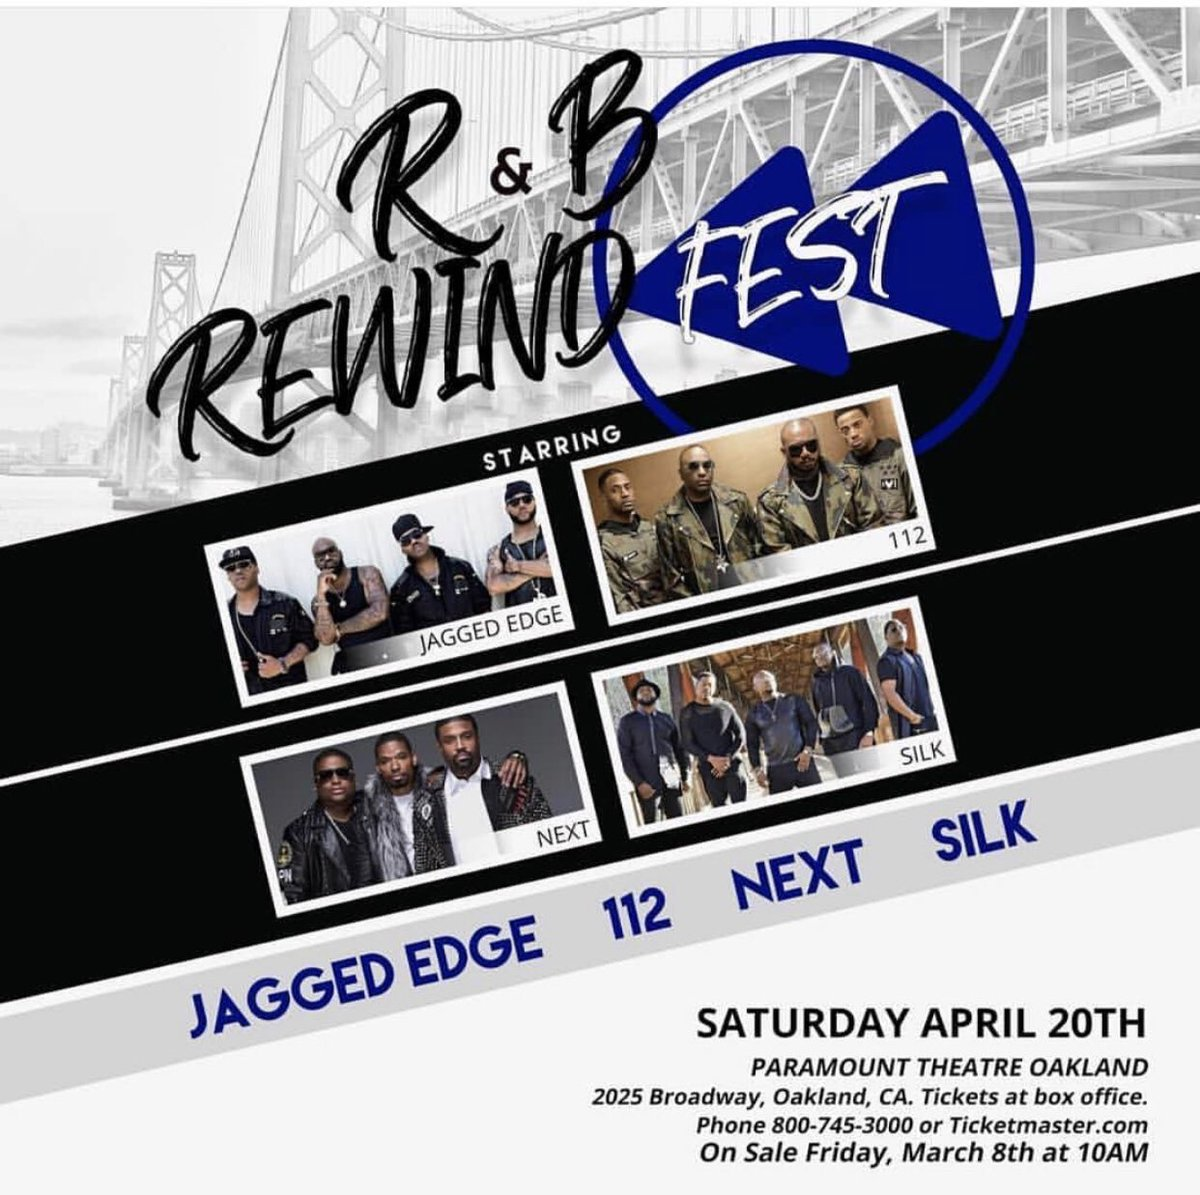 """📢Oakland, CA! """"We're Calling You""""! Sat., April 20th we will be performing live at the Paramount Theatre! Tickets available now at Box Office &  @ticketmaster! #Silk #112 #JaggedEdge #Next"""